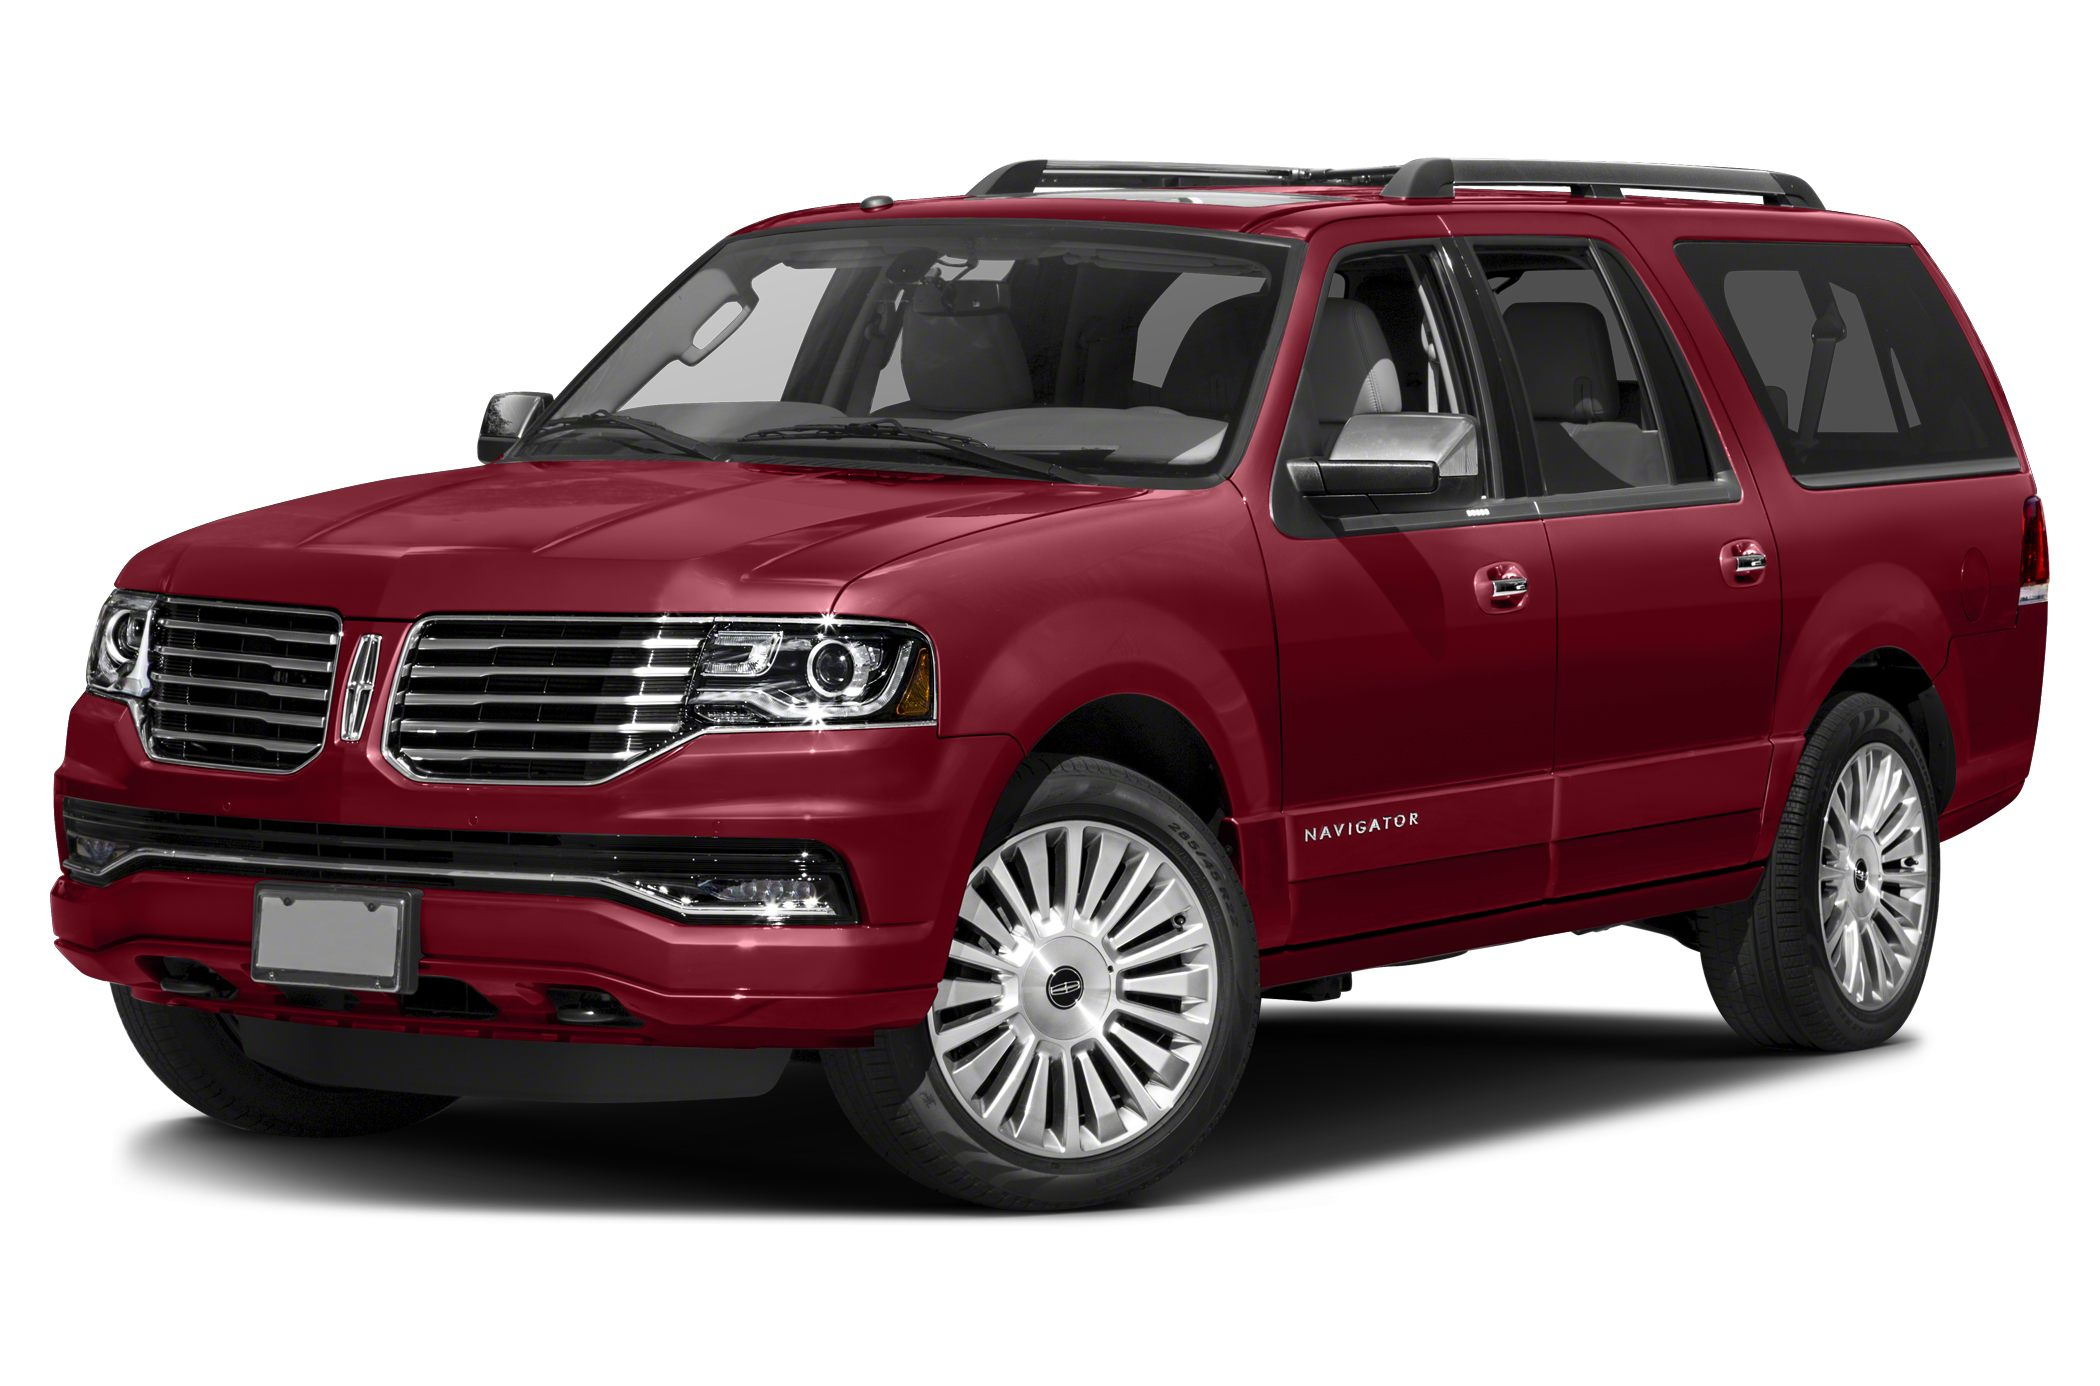 2017 Lincoln Navigator Msrp >> This dream home theater and office happens to be in a Cadillac Escalade [w/video] - Autoblog